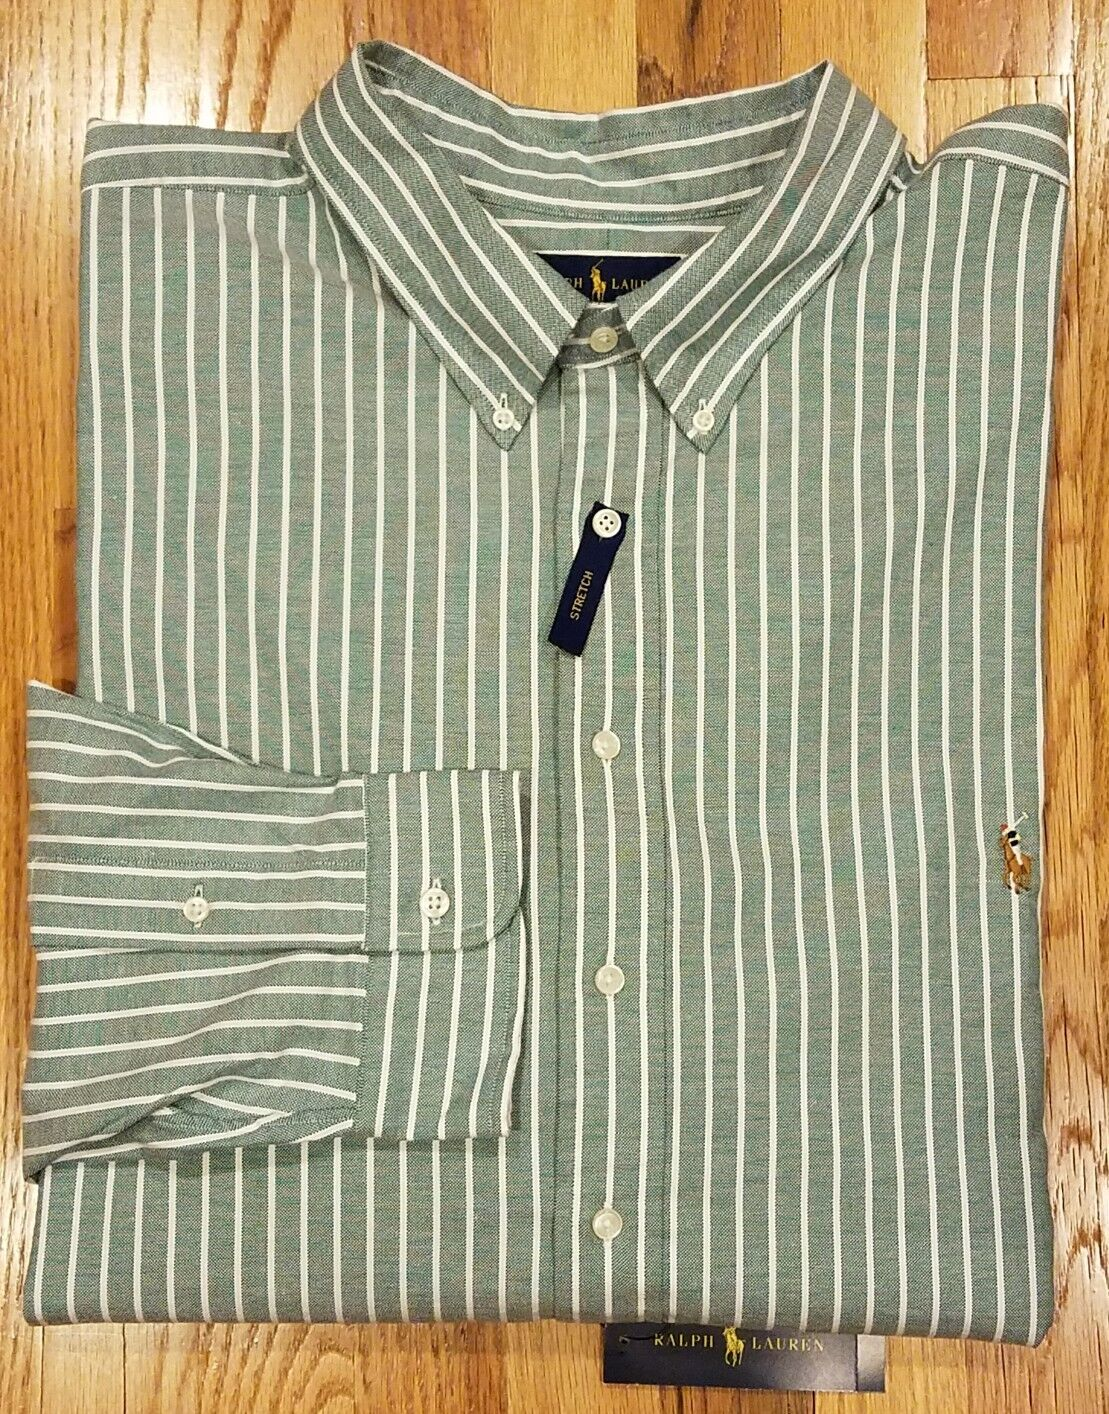 RALPH LAUREN MEN BIG TALL STRIPE LONG SLEEVE STRETCH OXFORD SHIRT 4XB THESPOT917